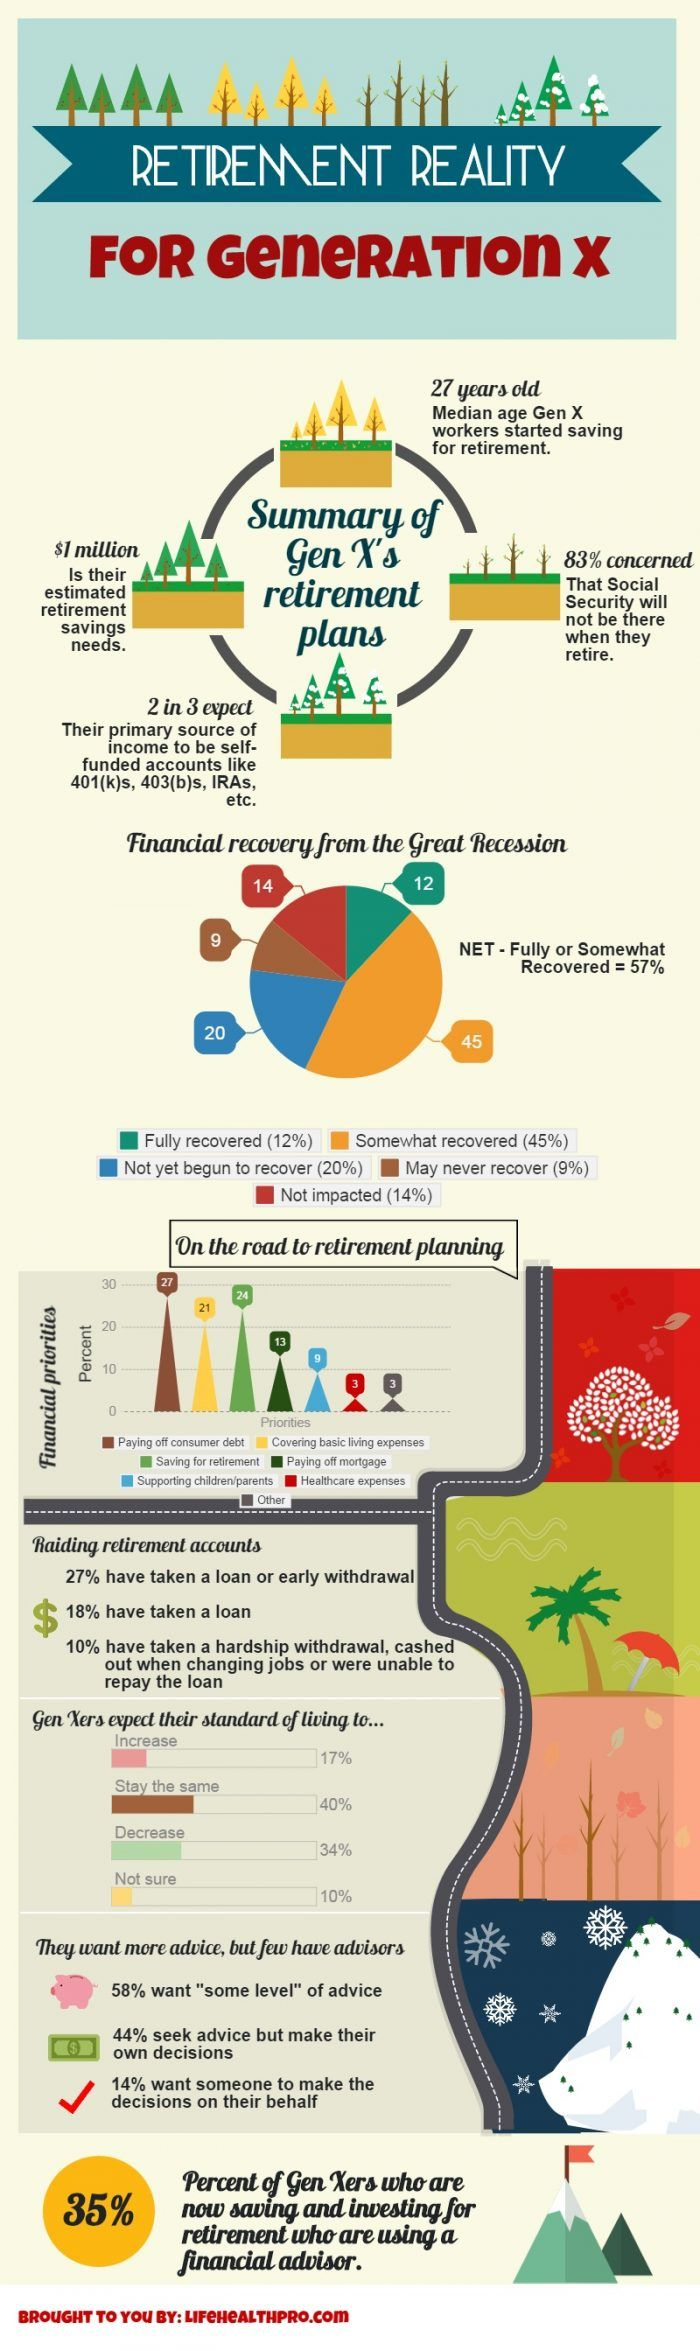 Retirement Reality For Generation X